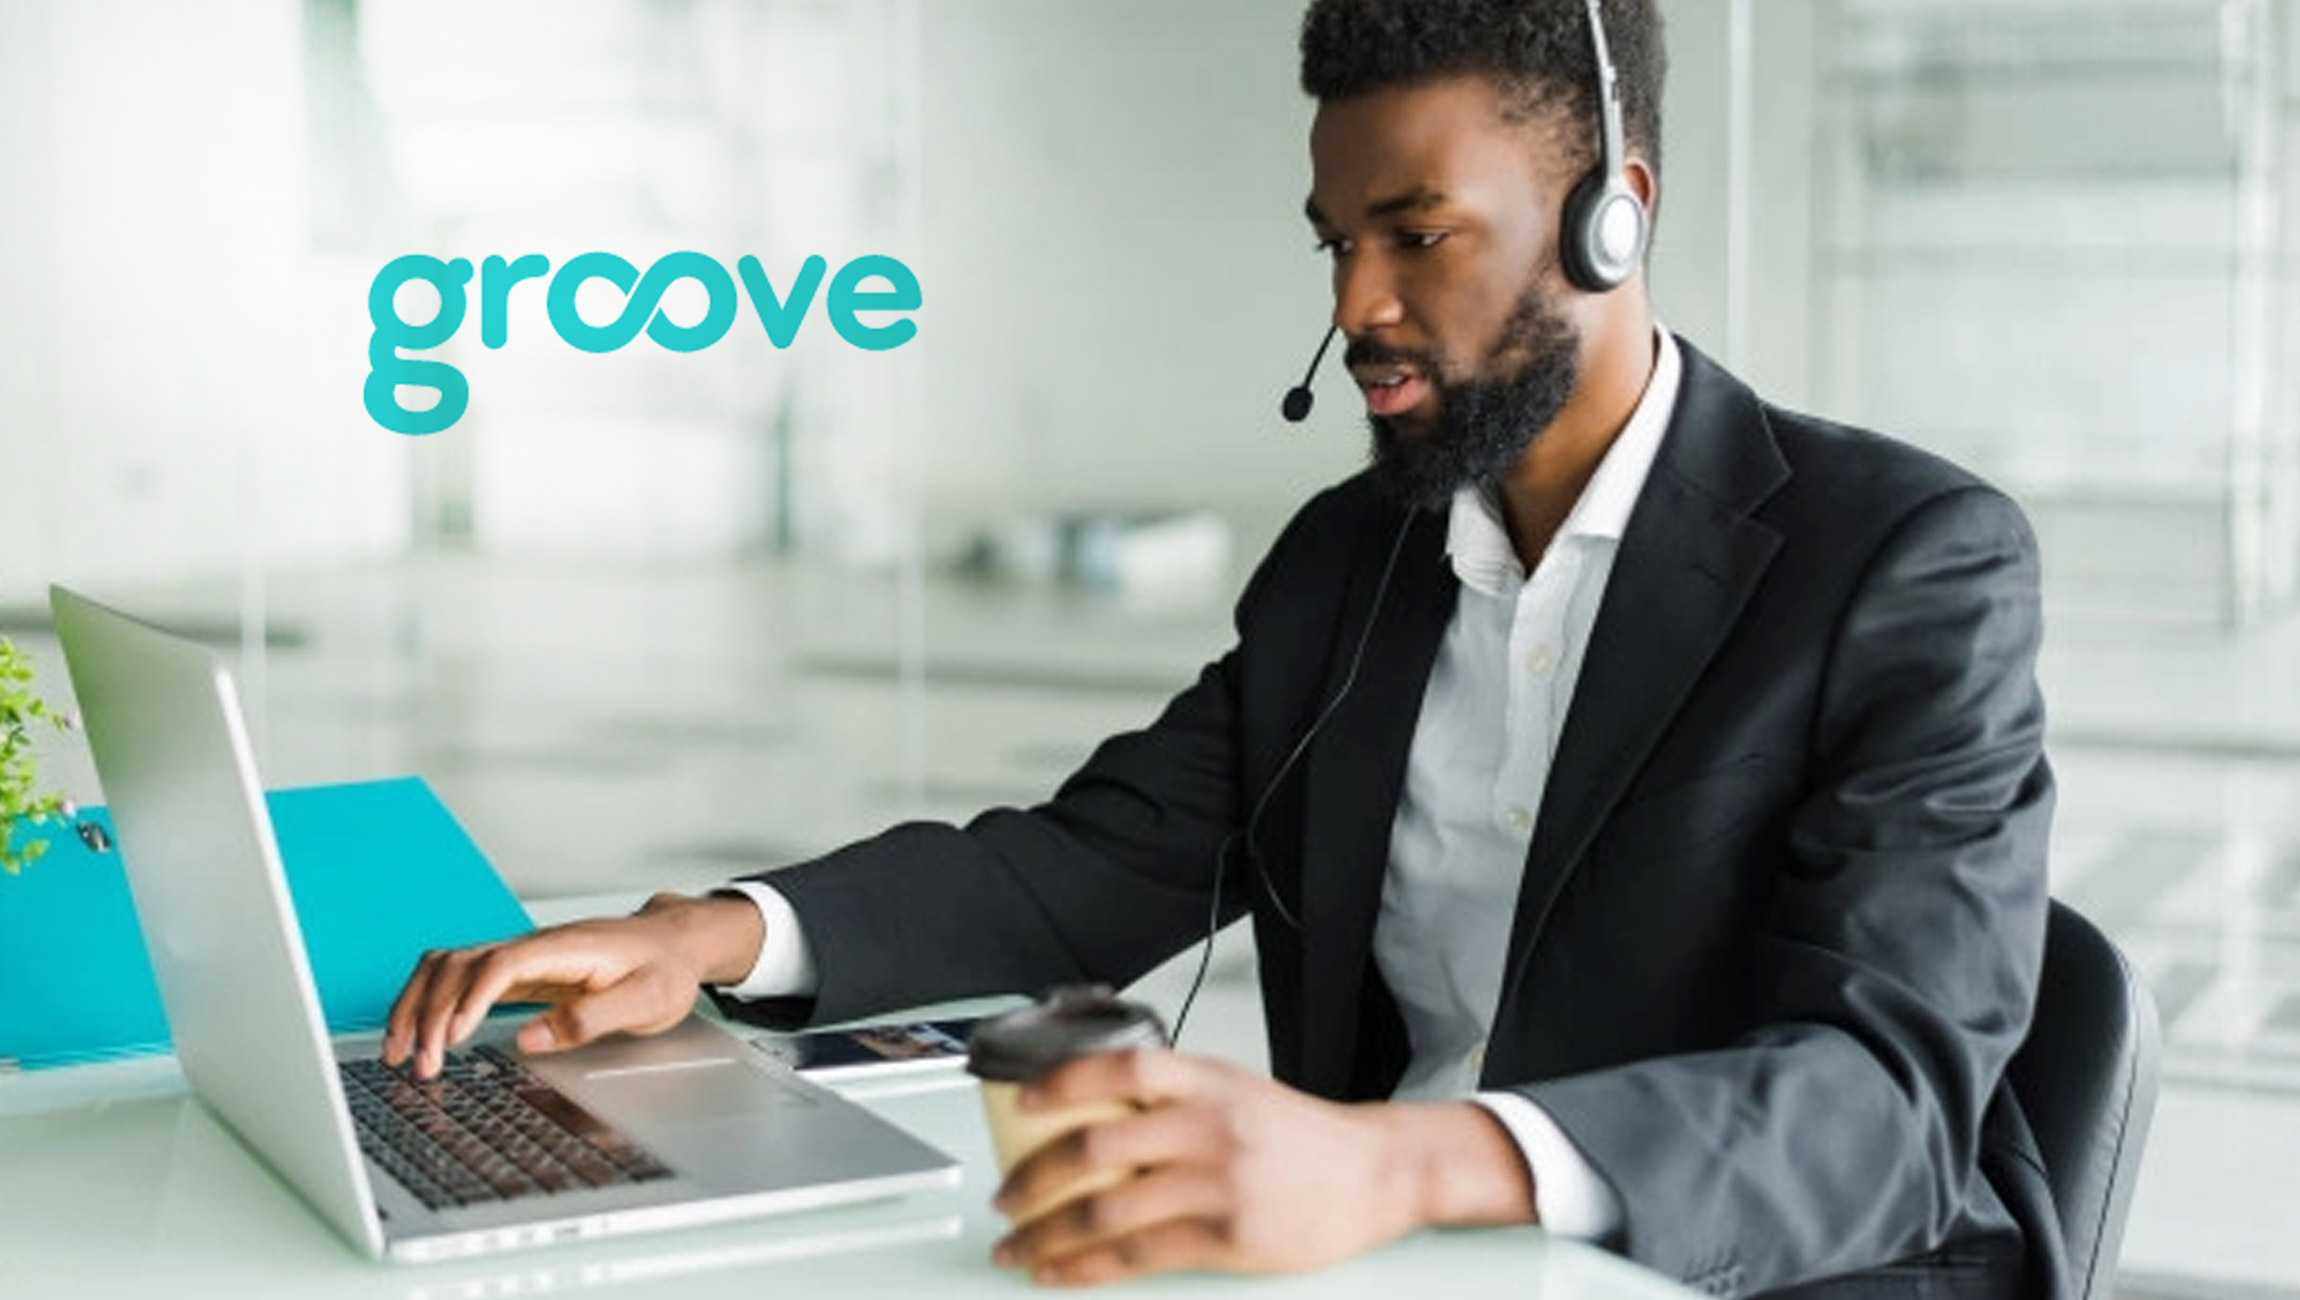 Groove Is the Highest-Rated Sales Engagement Platform on G2 for Three Years in a Row